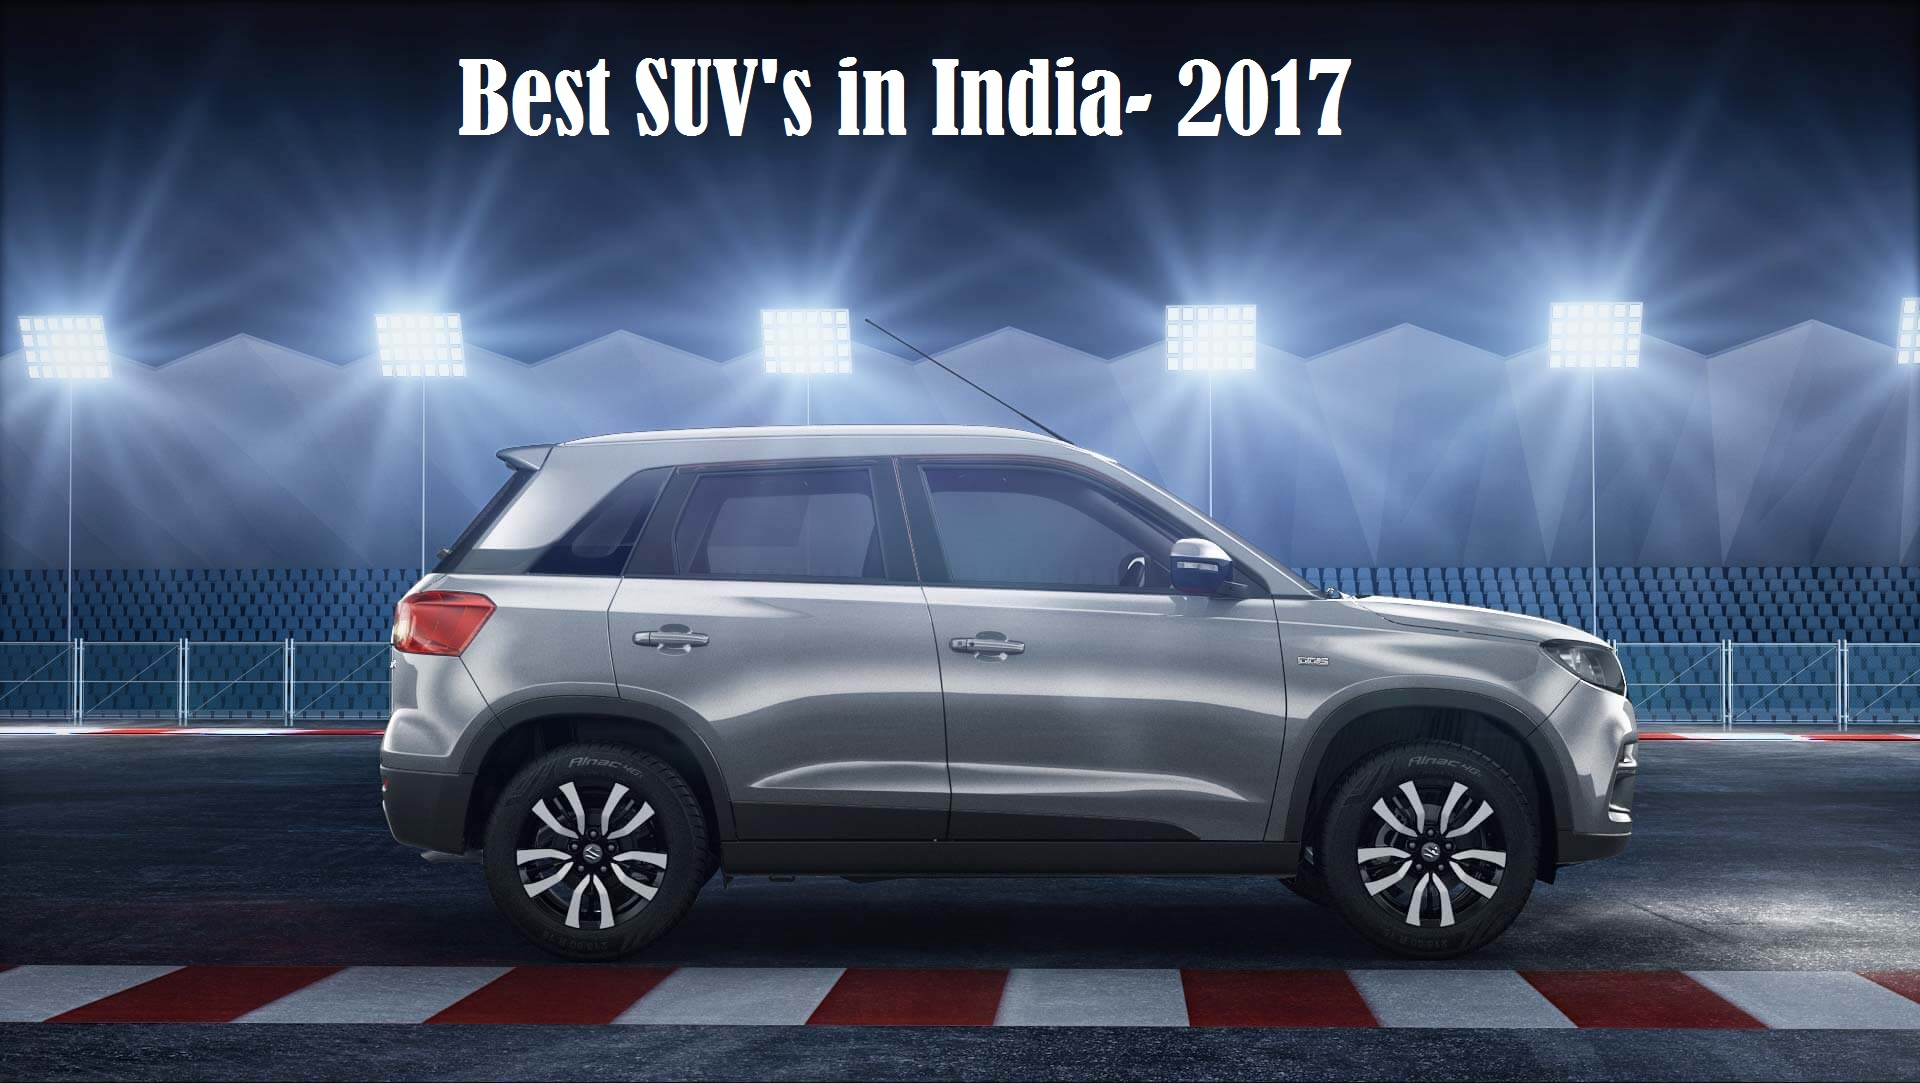 best suvs in india 2017 best suv 39 s in india with price. Black Bedroom Furniture Sets. Home Design Ideas